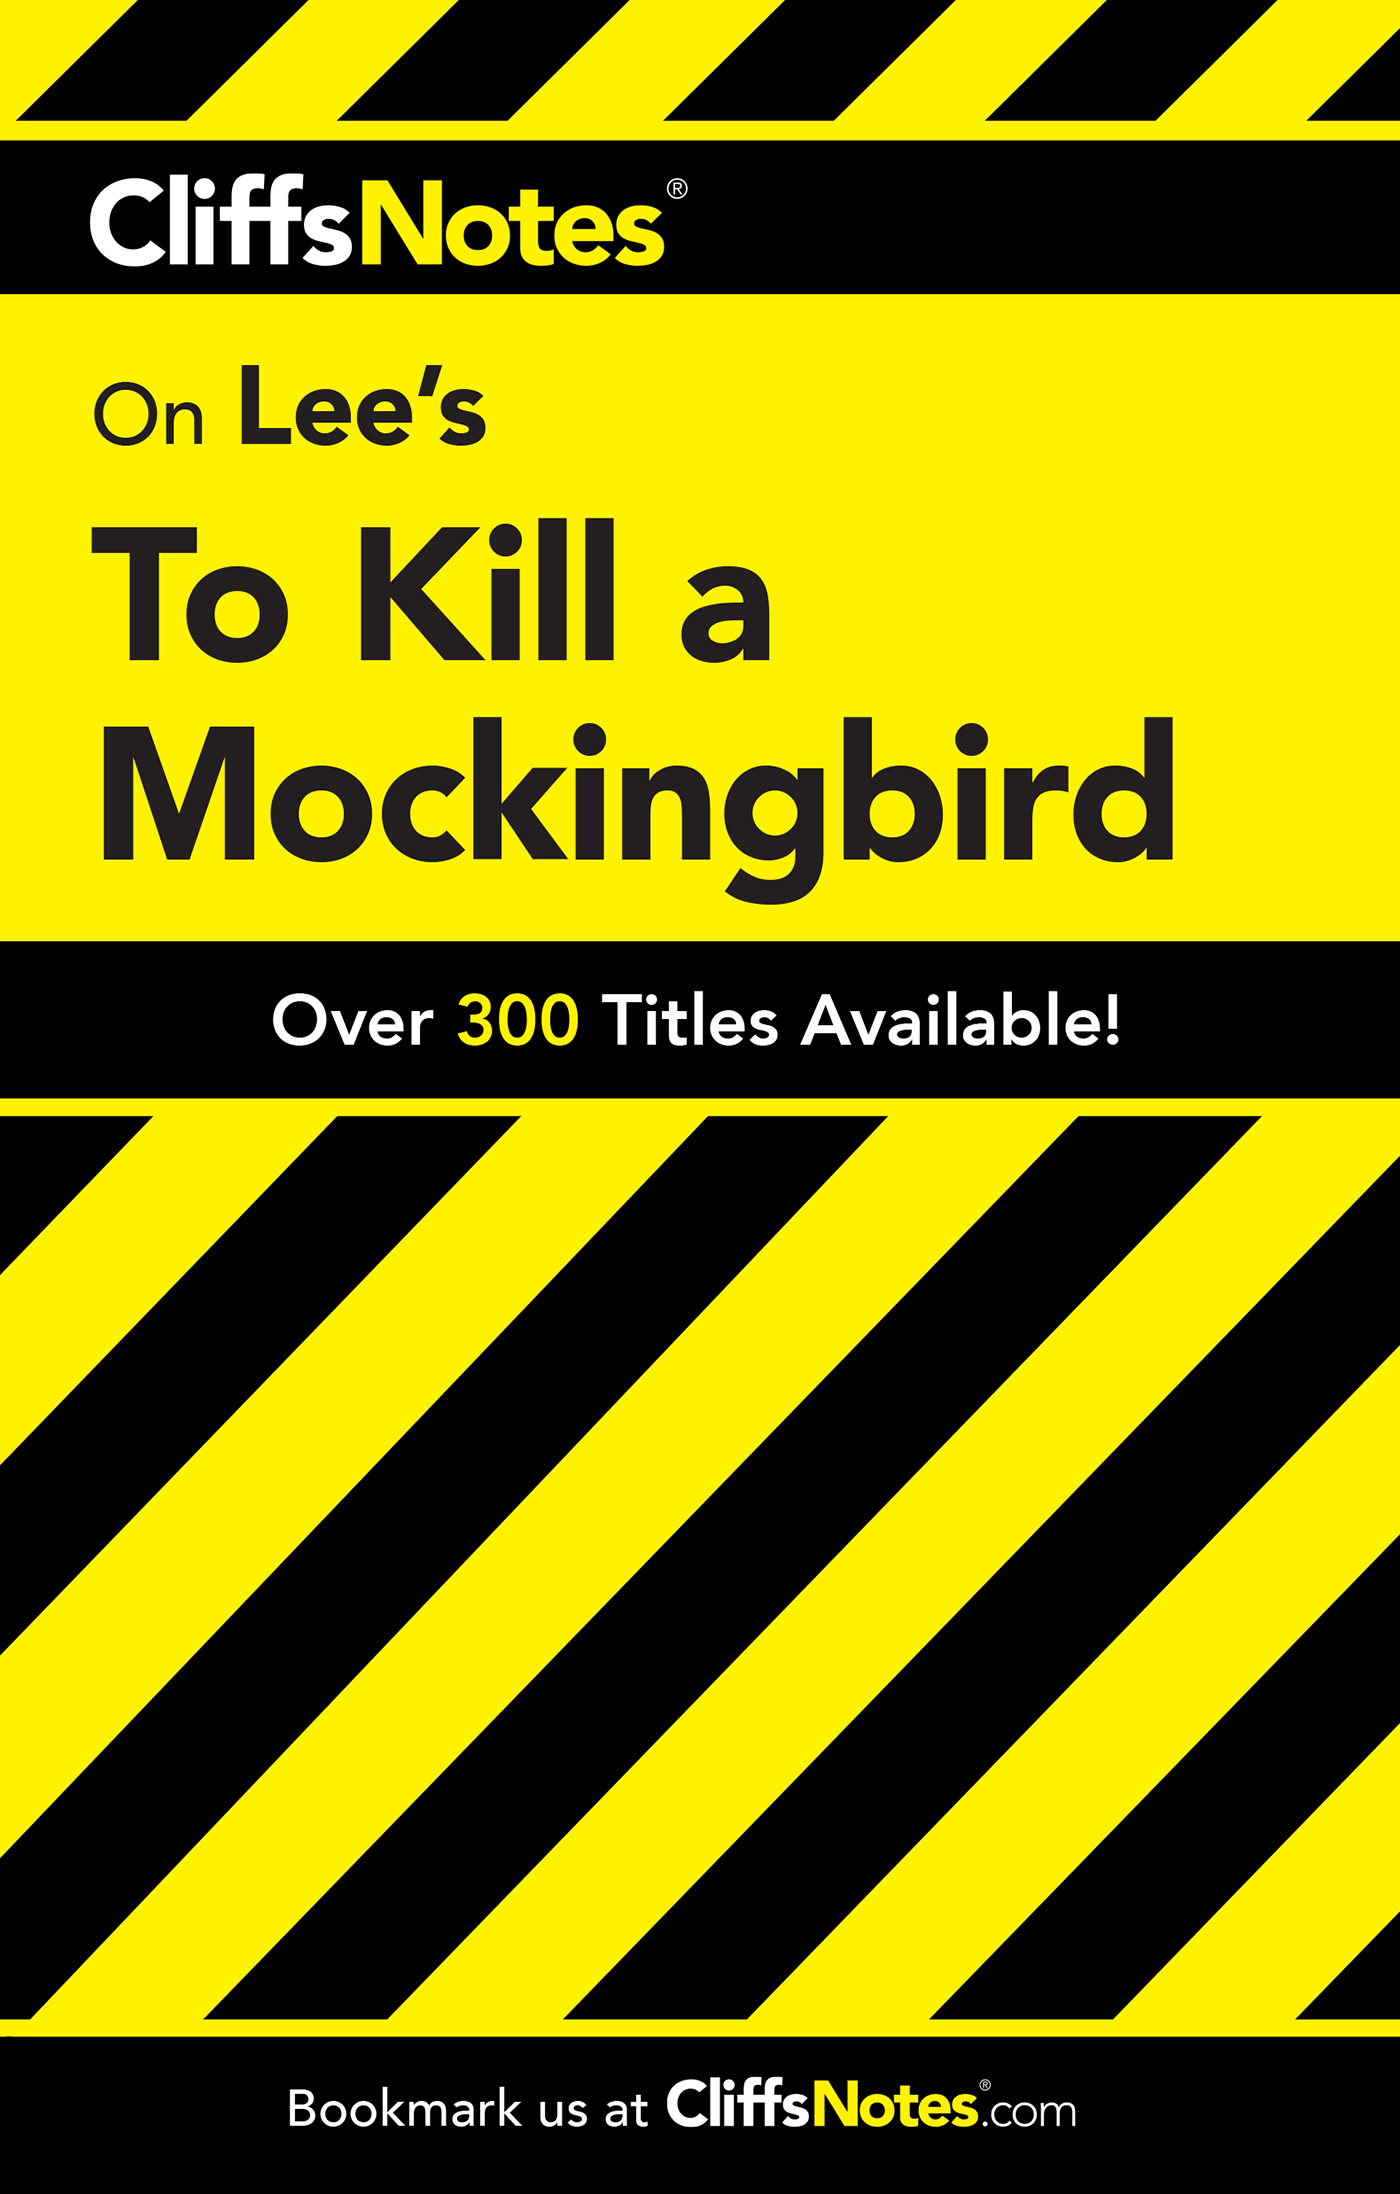 CliffsNotes on Lee's To Kill a Mockingbird-9780764586002